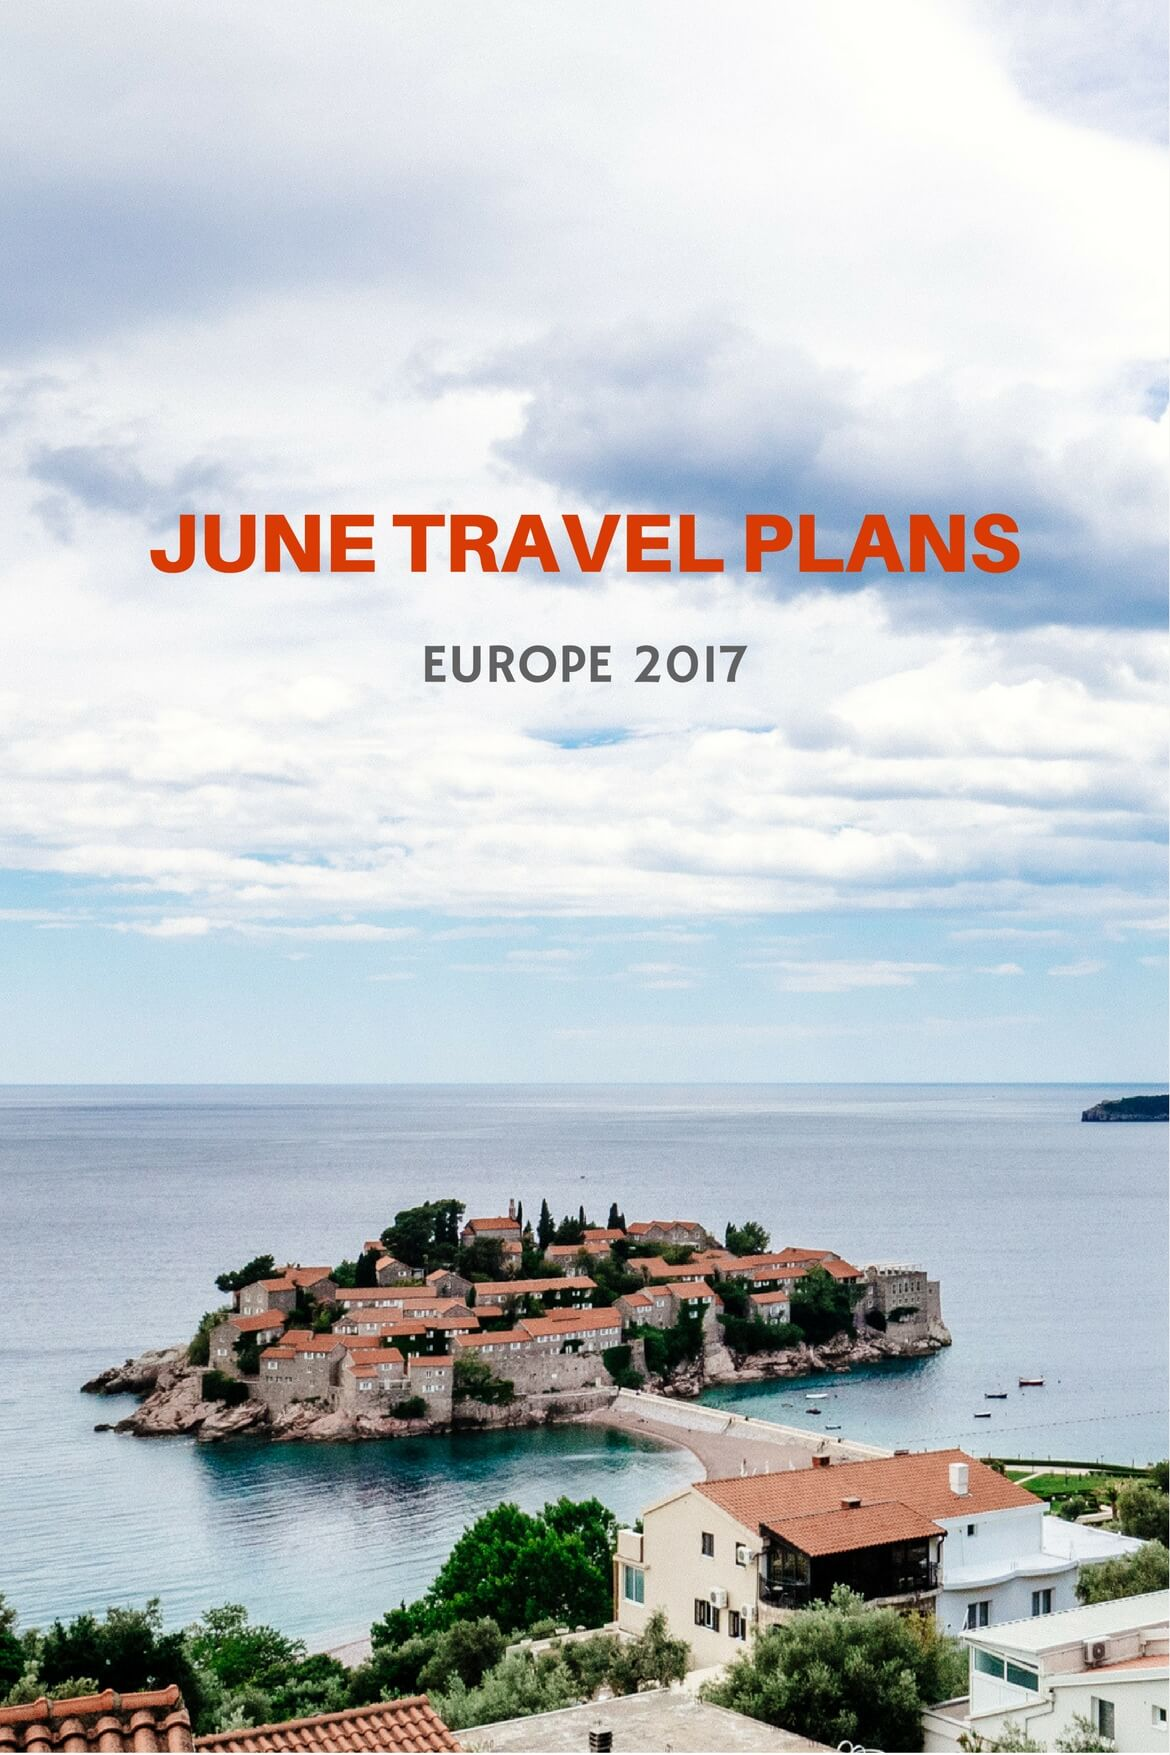 June Travel Plans 2017